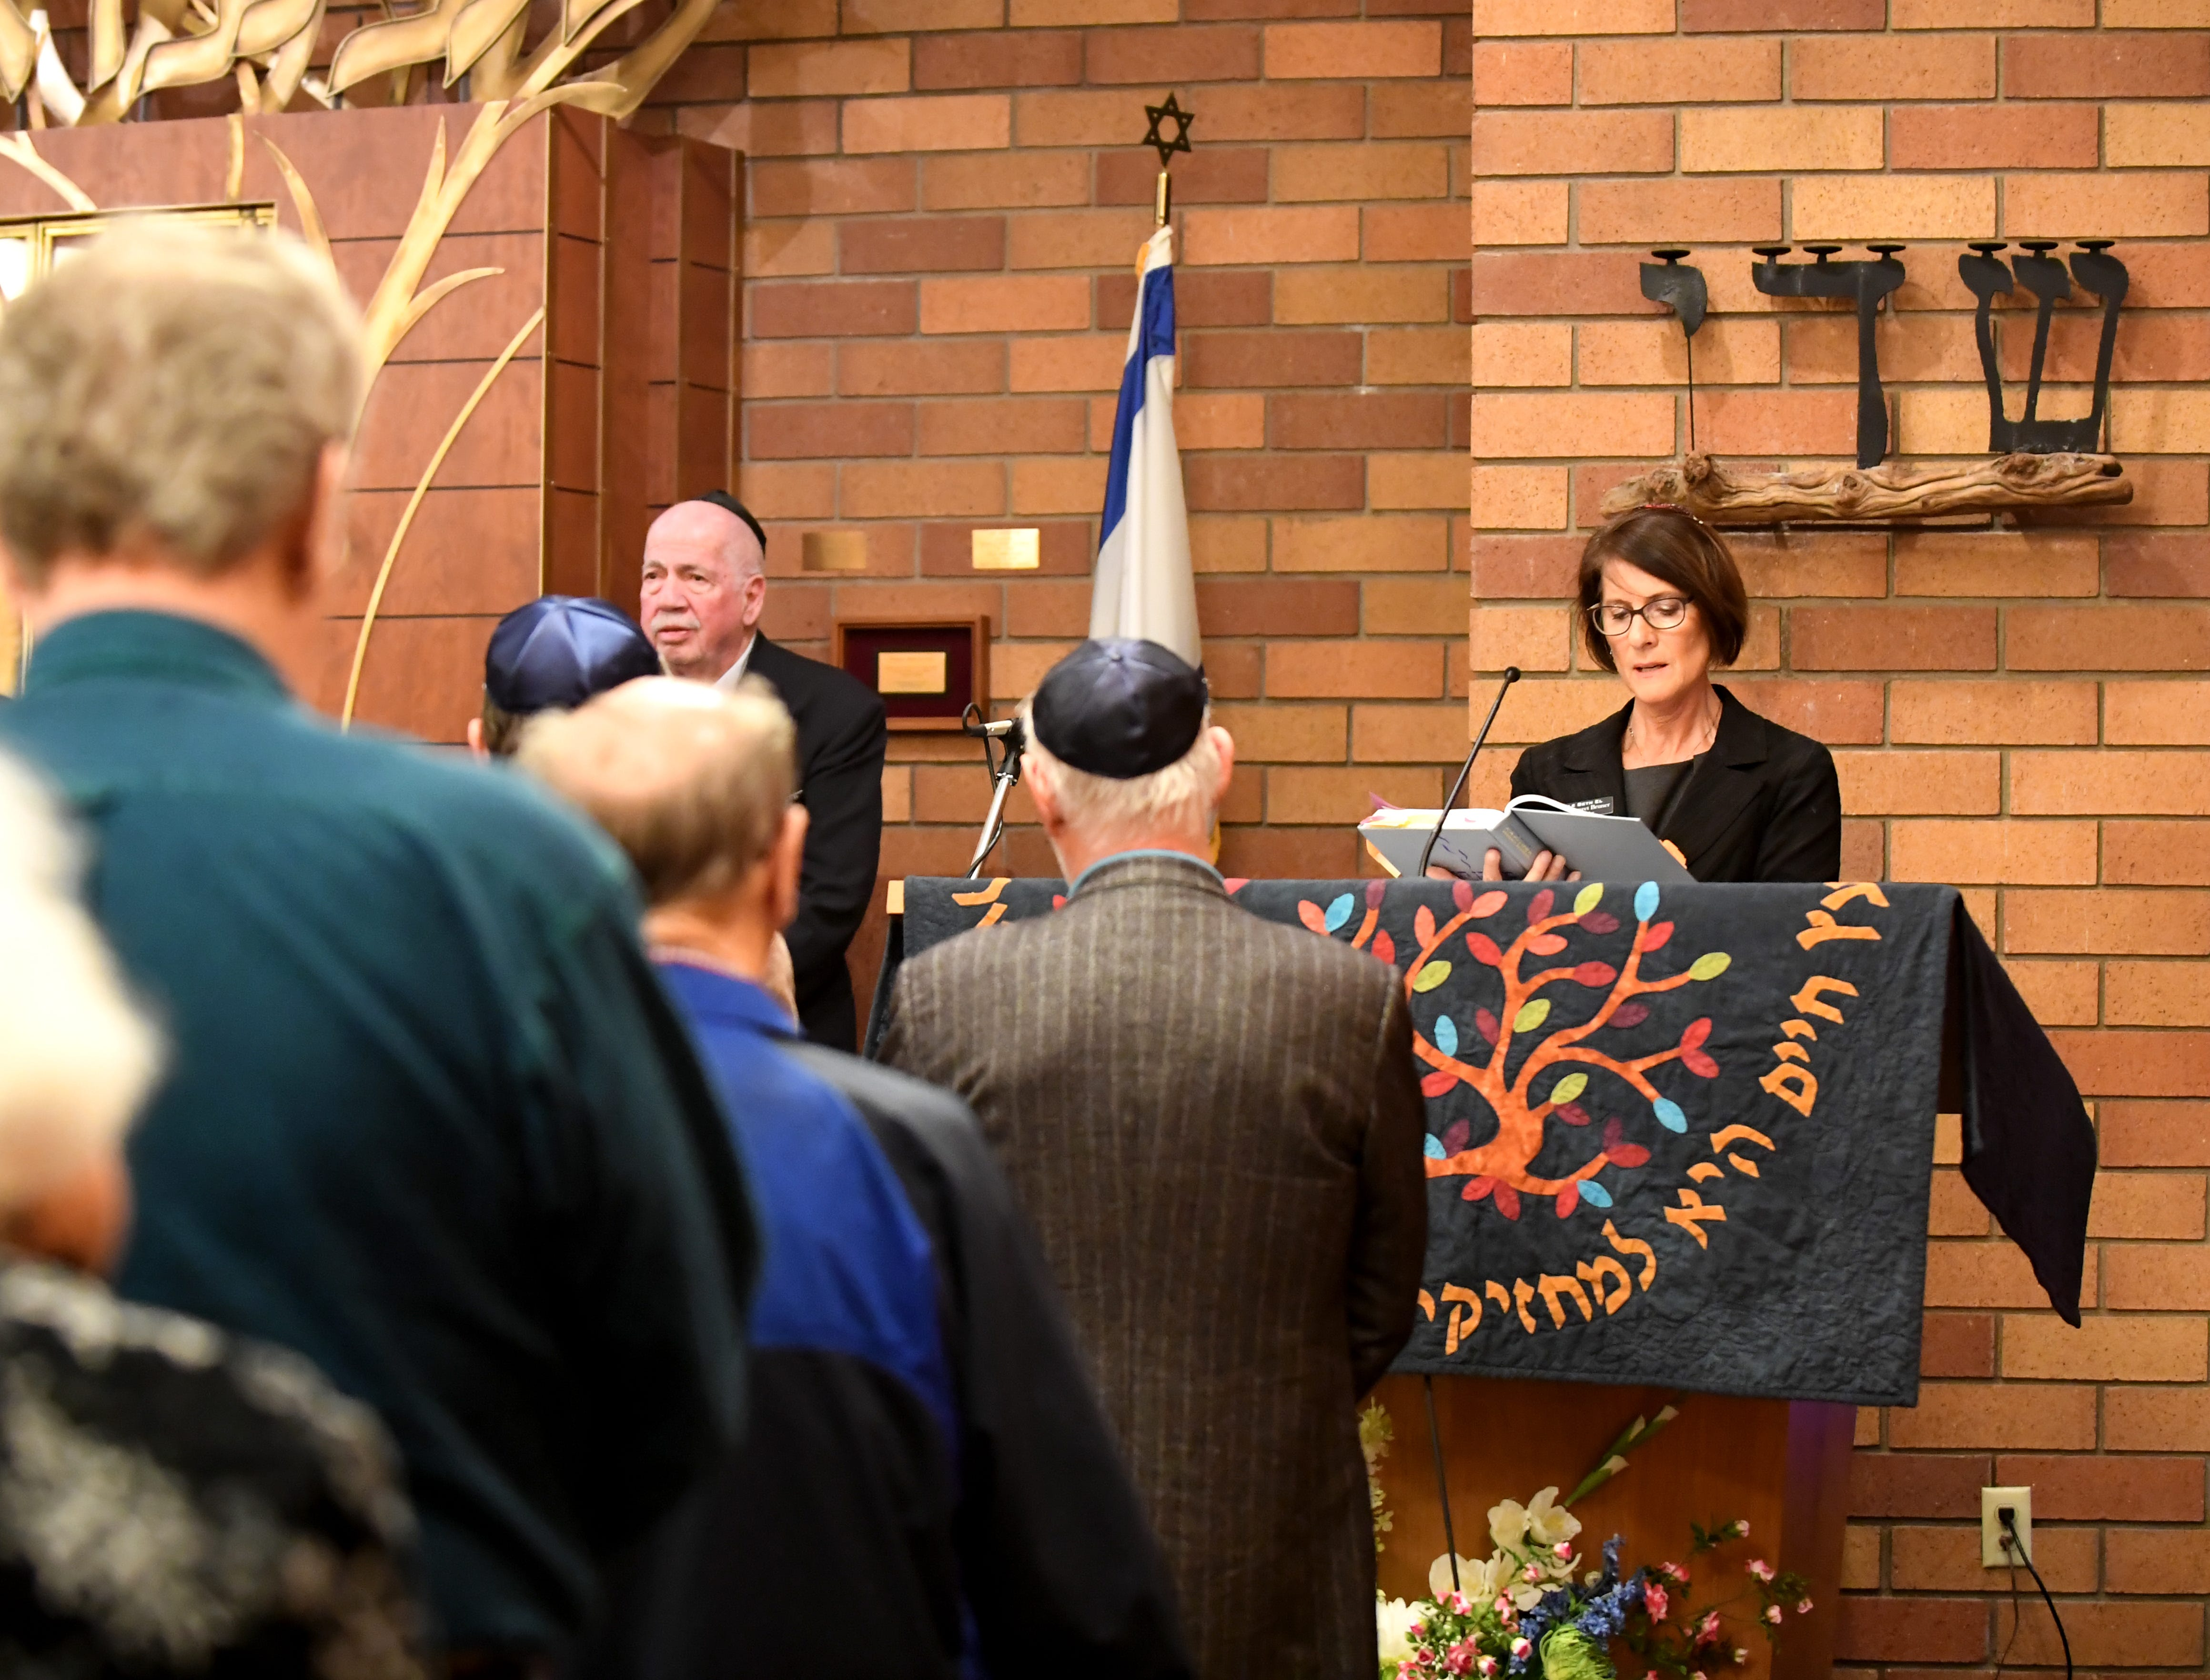 Cantor Margaret Bruner leads a gathering at Temple Beth  El in Salinas Monday to mourn the loss of 11 people killed at a Pittsburgh synagogue.